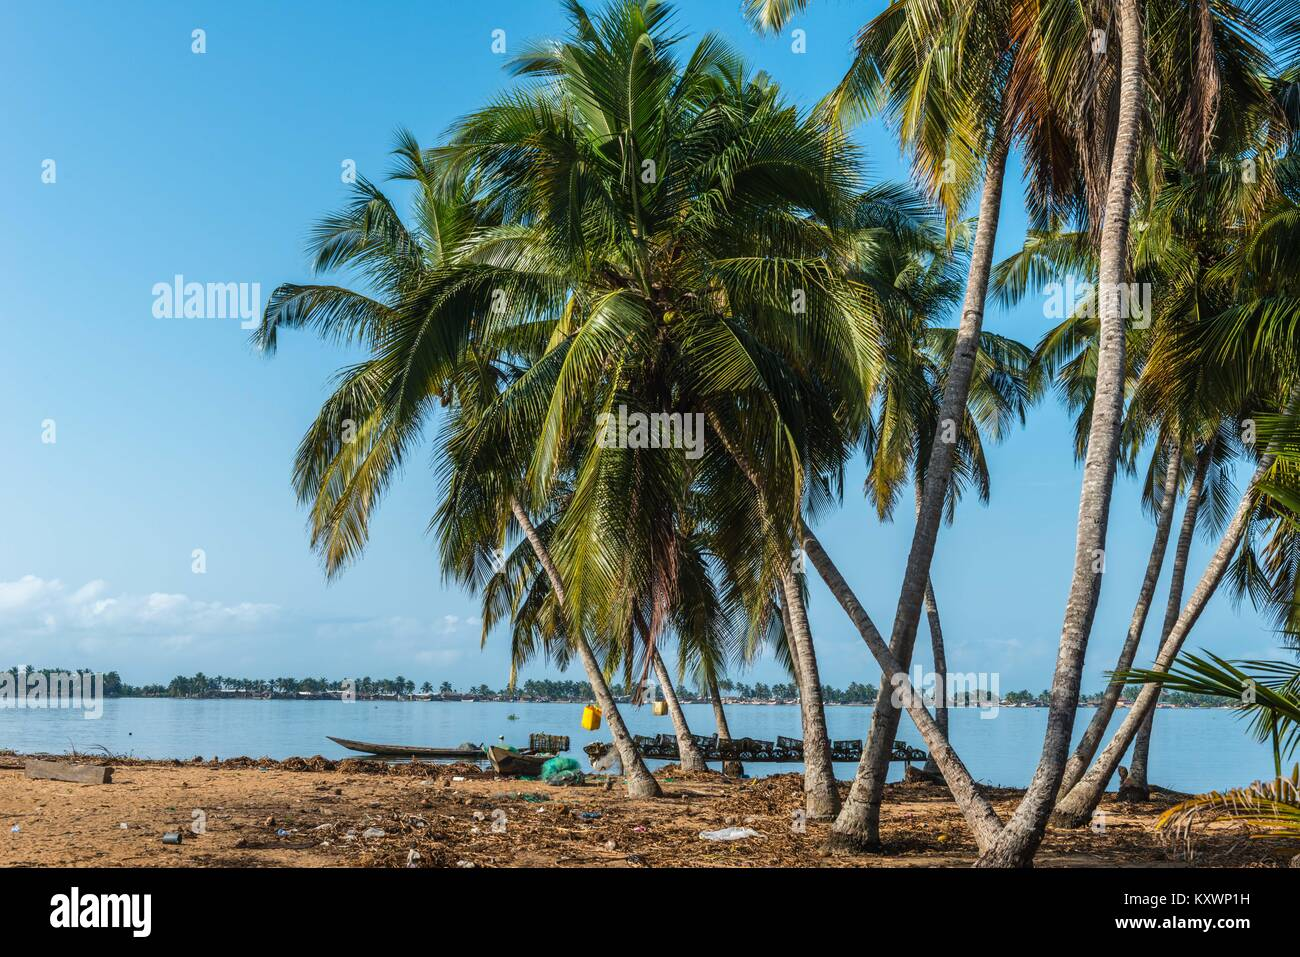 Aziza Island in the Volta River, Ada Foah, Greater Accra Region, Ghana, Africa - Stock Image